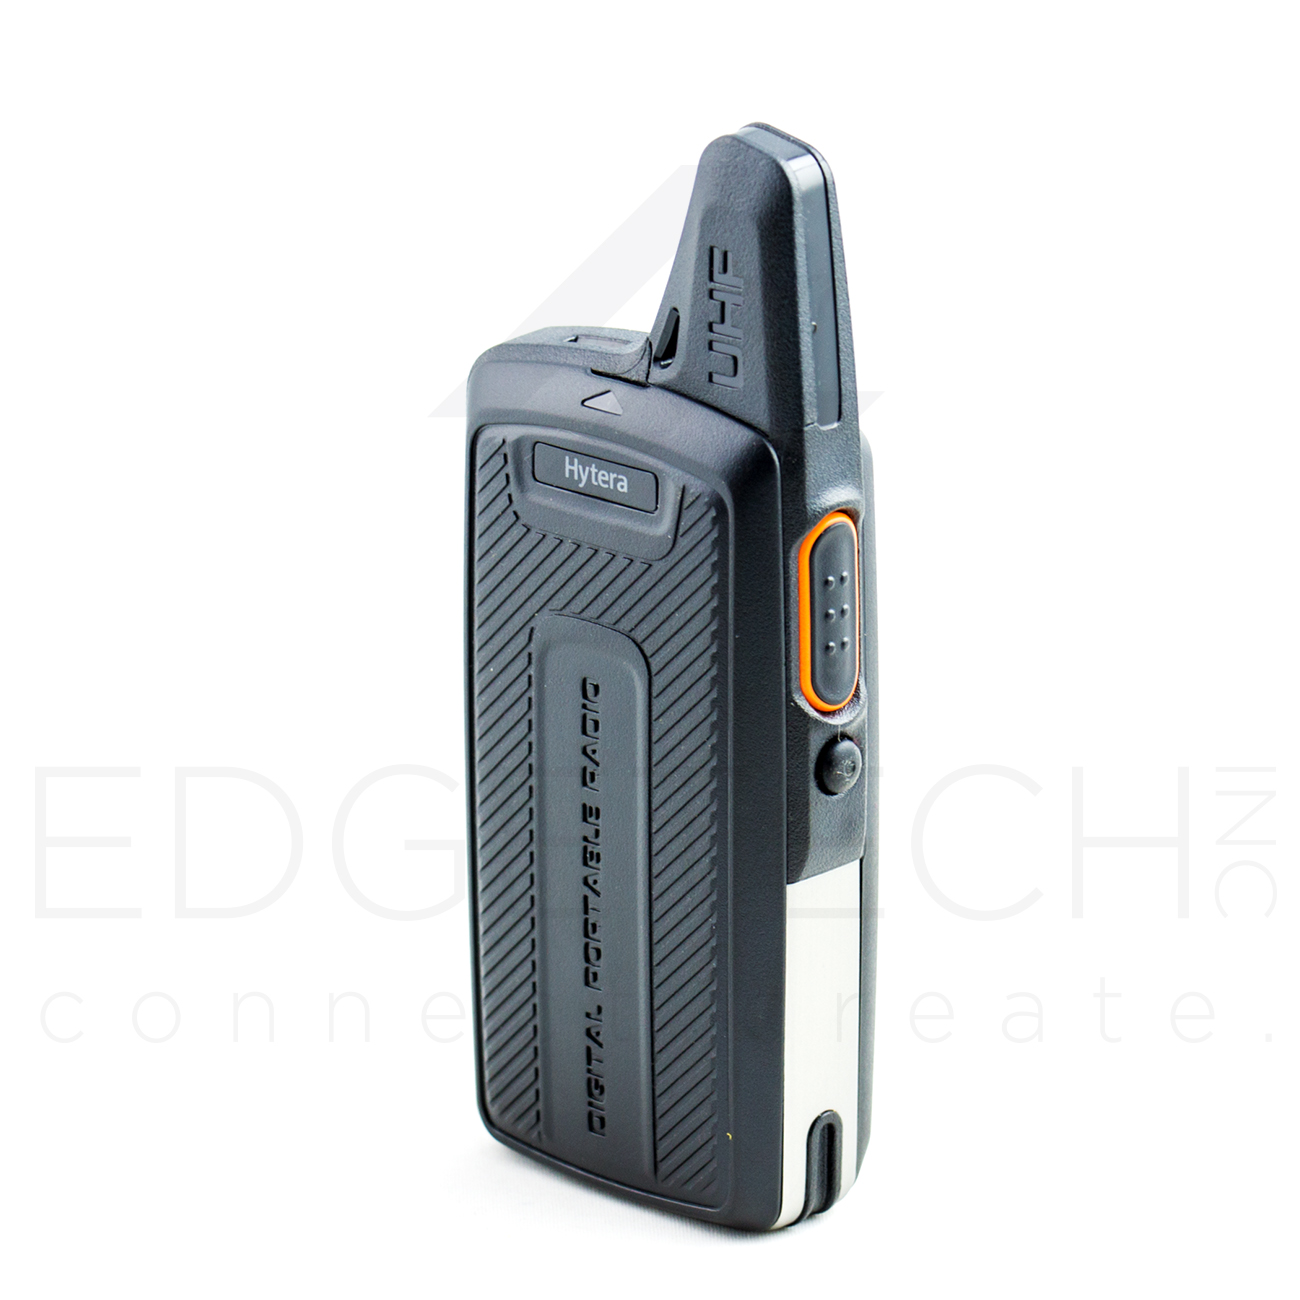 Hytera PD362i-Uc W Pocket-Size Radio